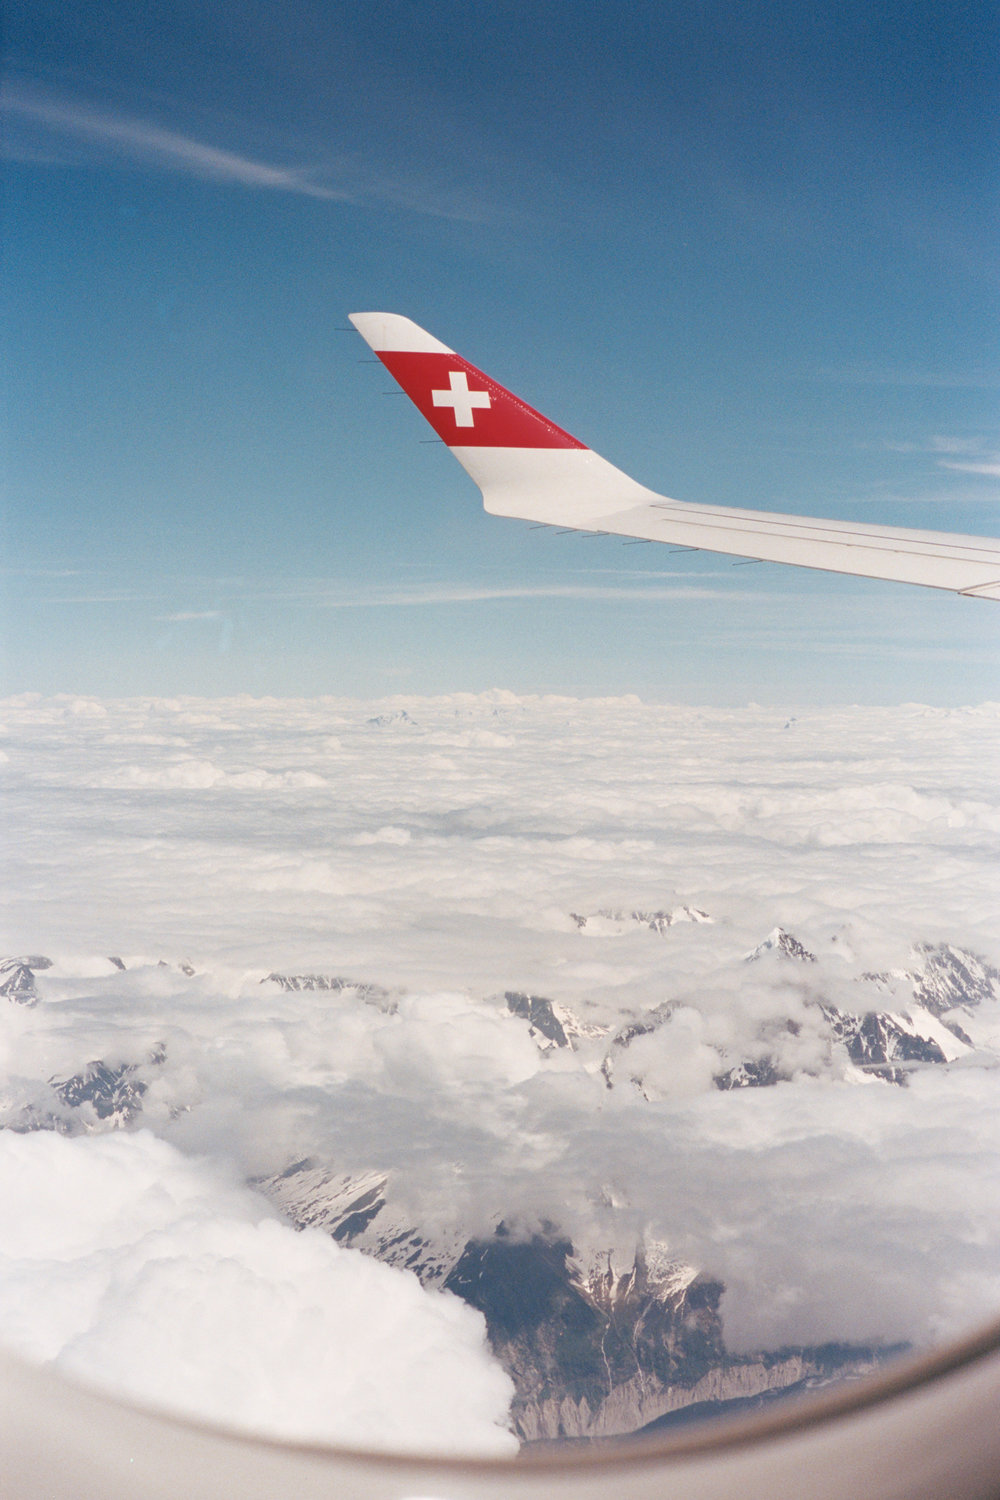 switzerland_leica-58.jpg